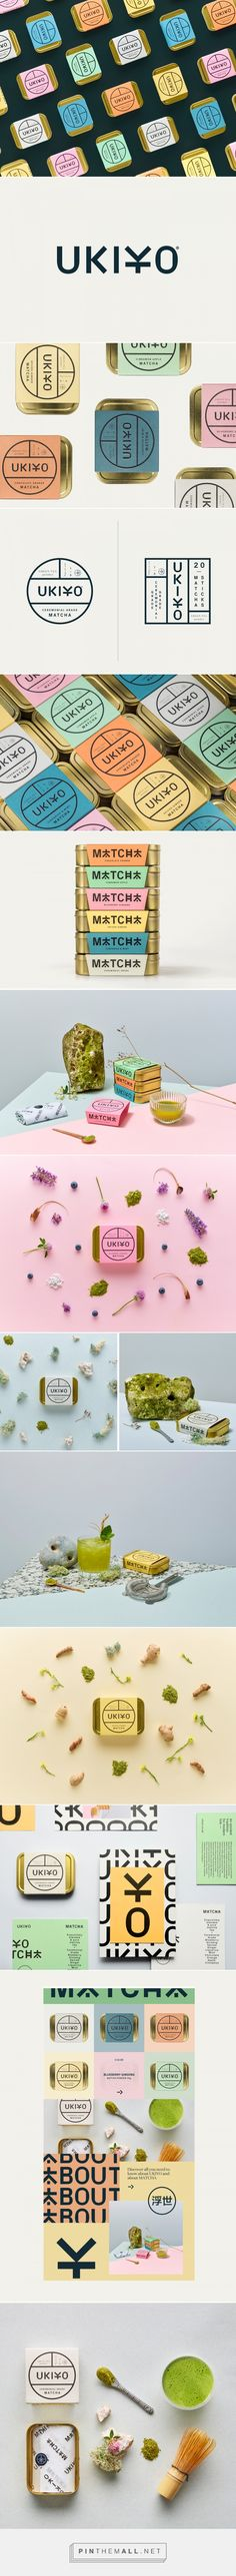 UKIYO Matcha Tea Packaging by I Want Design   Fivestar Branding Agency – Design and Branding Agency & Curated Inspiration Gallery  #tea #teapackaging #packaging #package #packagingdesign #packagedesign #packaginginspiration #design #behance #dribbble #pinterest